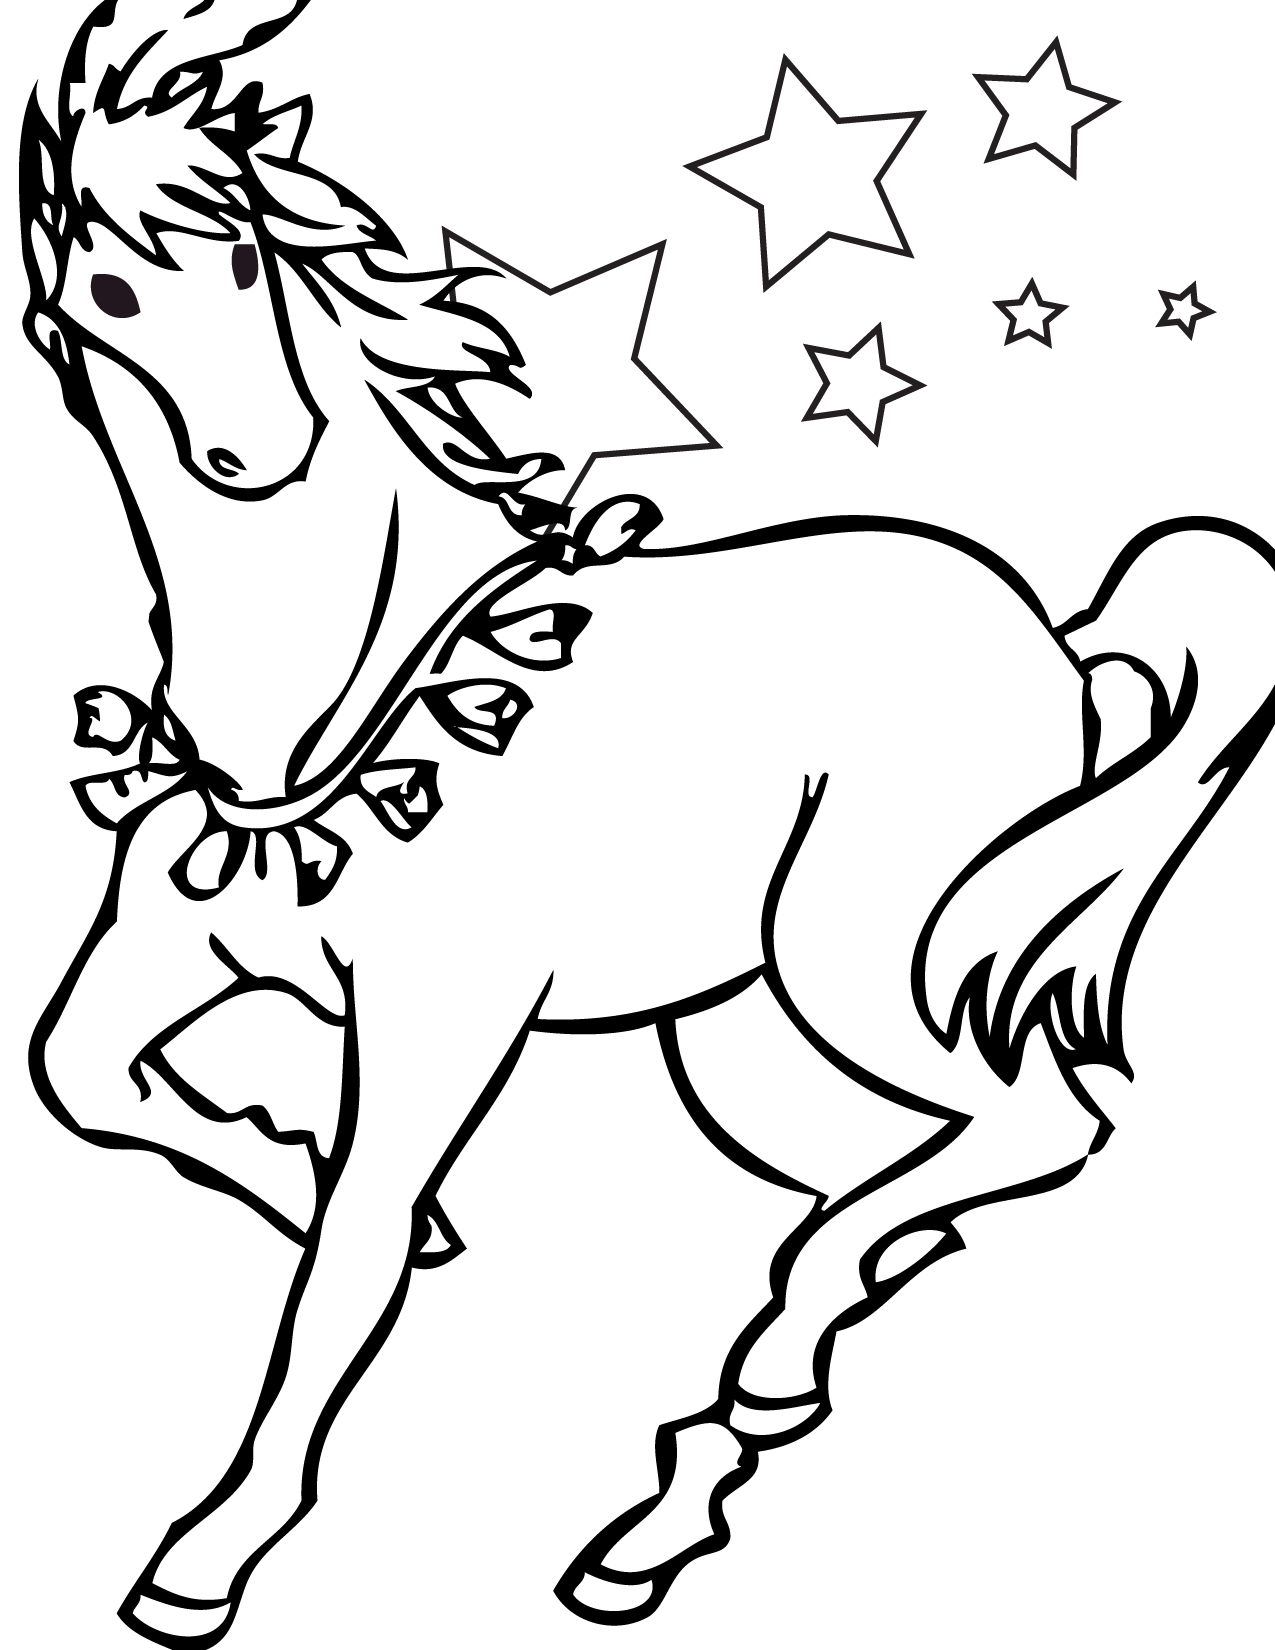 Free coloring horse pictures to print - Free Coloring Pages Of Horses